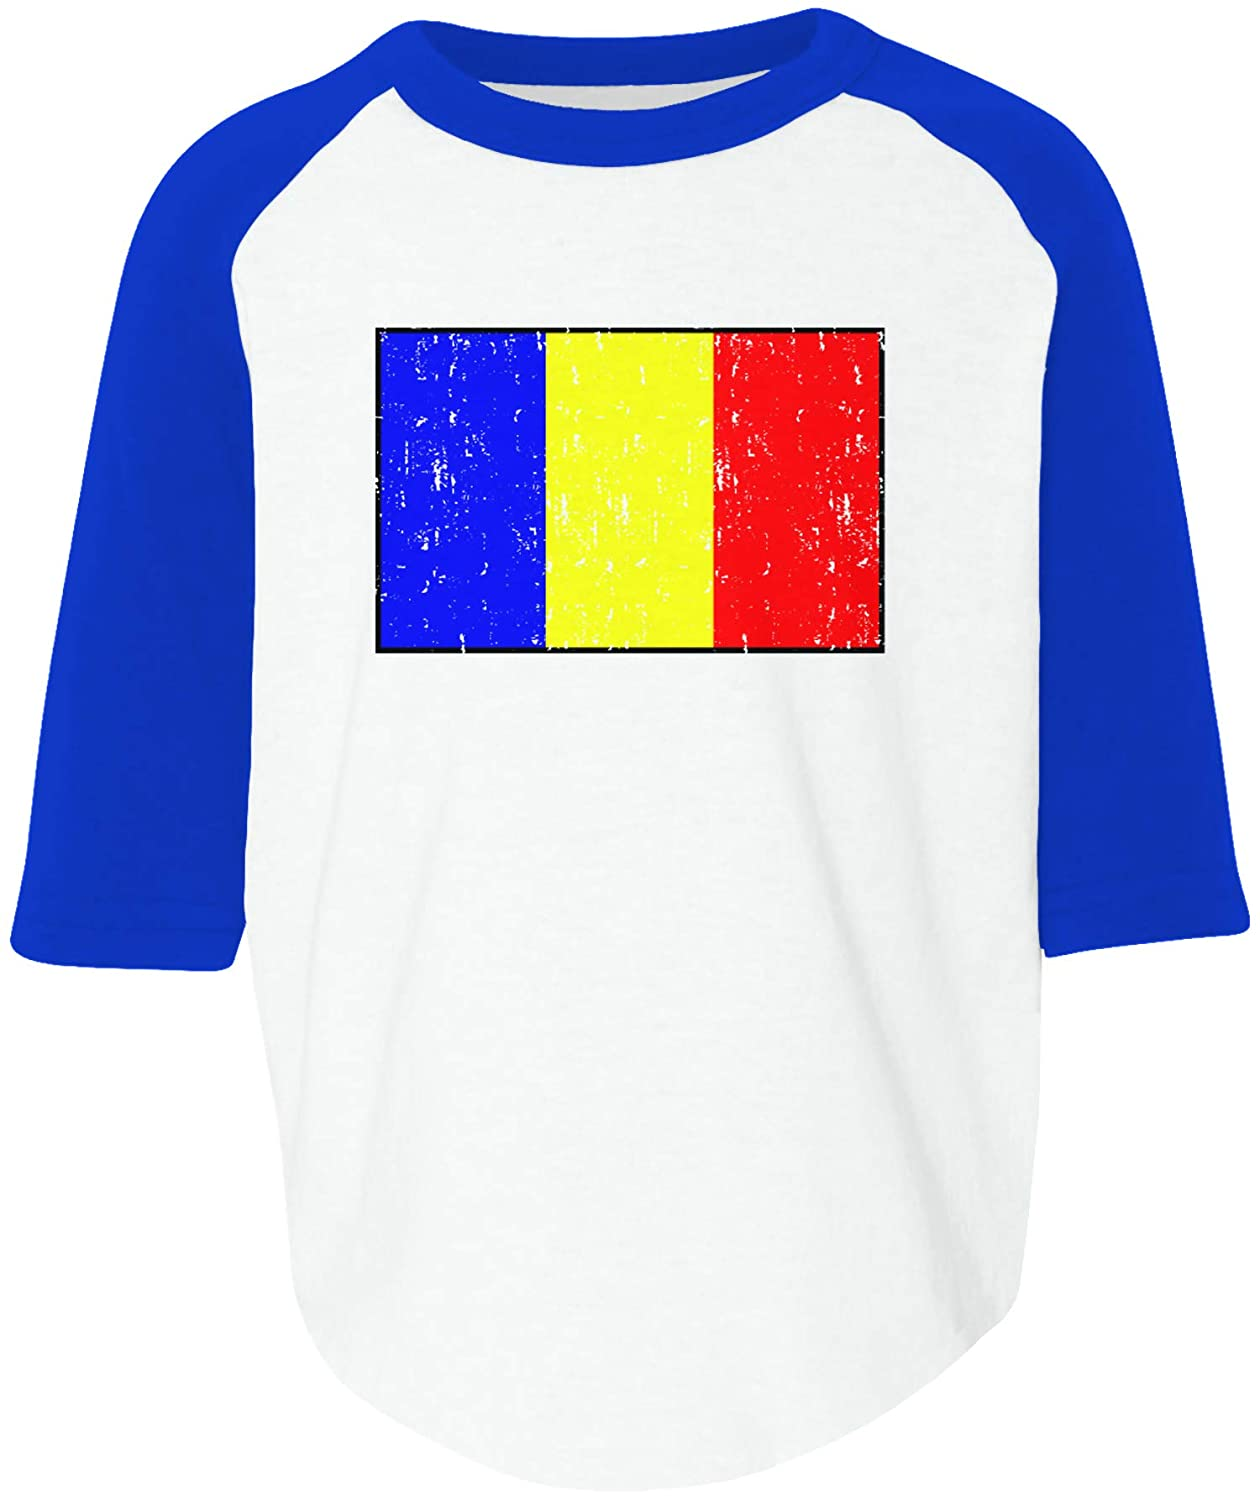 Amdesco Flag of Chad Chadian Toddler Raglan Shirt